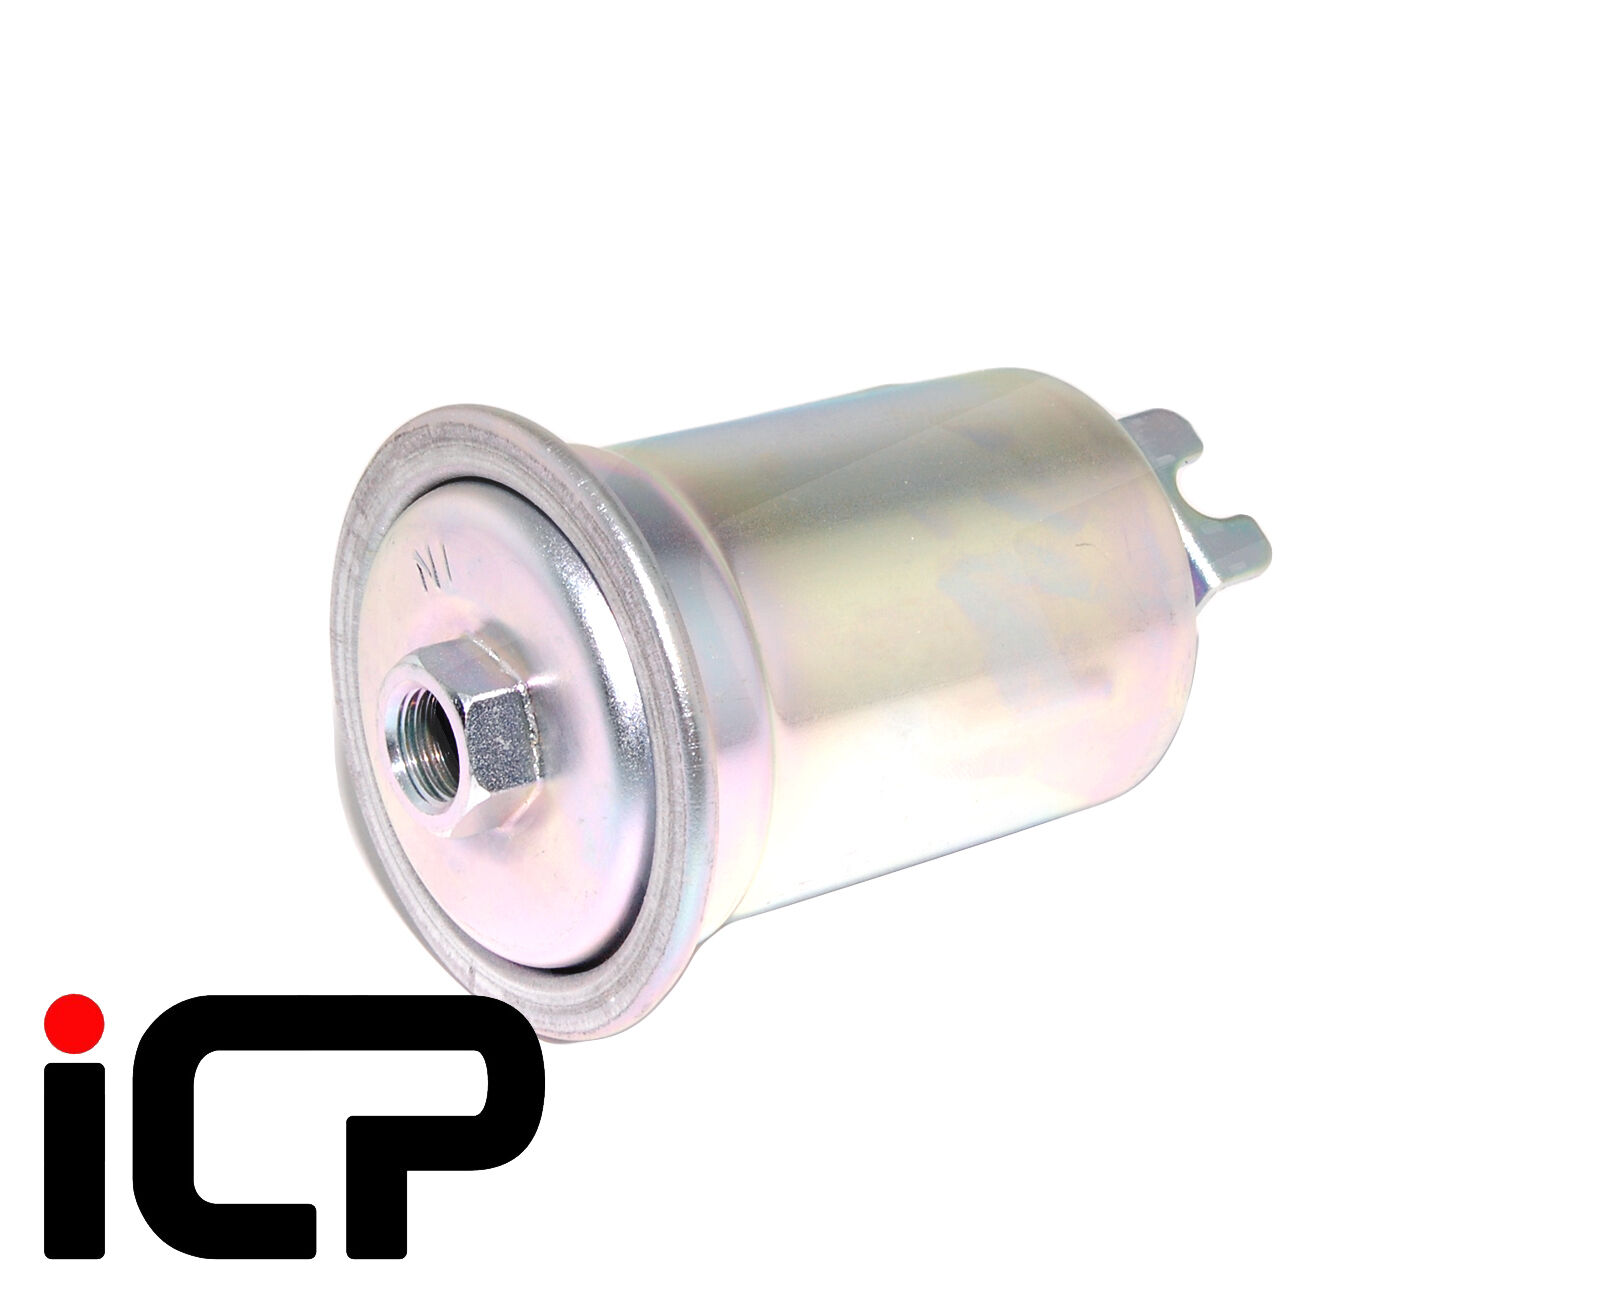 Mitsubishi Lancer Evo Evolution 1 2 3 Fuel Filter Cd9a Ce9a Gsr Rs 2008 Of 1free Shipping